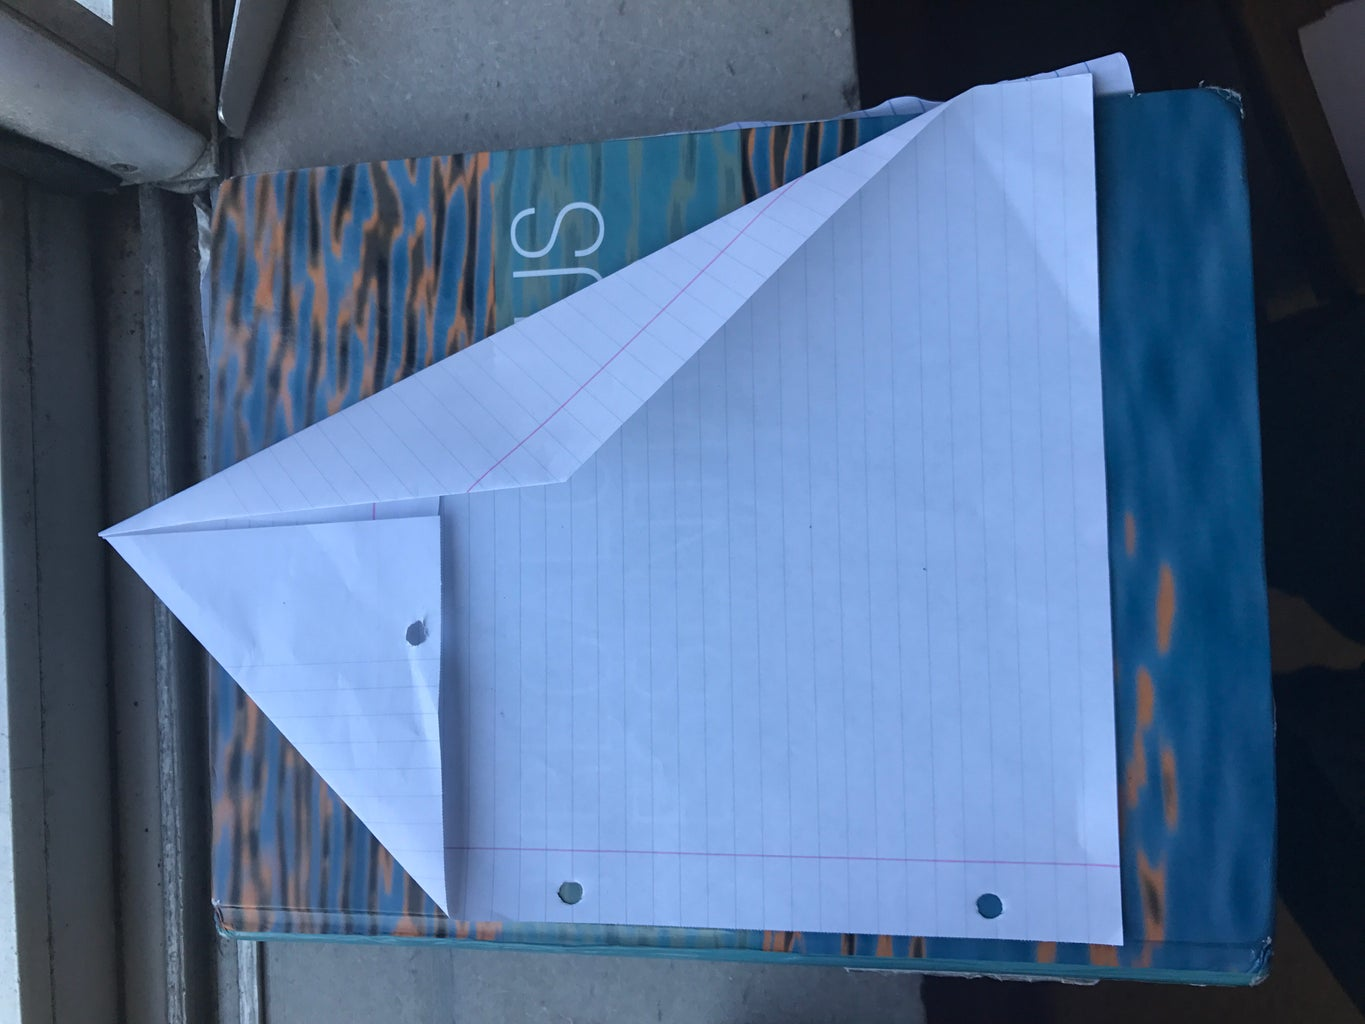 Flip the Paper Back Around and Fold the Top Right Crease Towards the Center